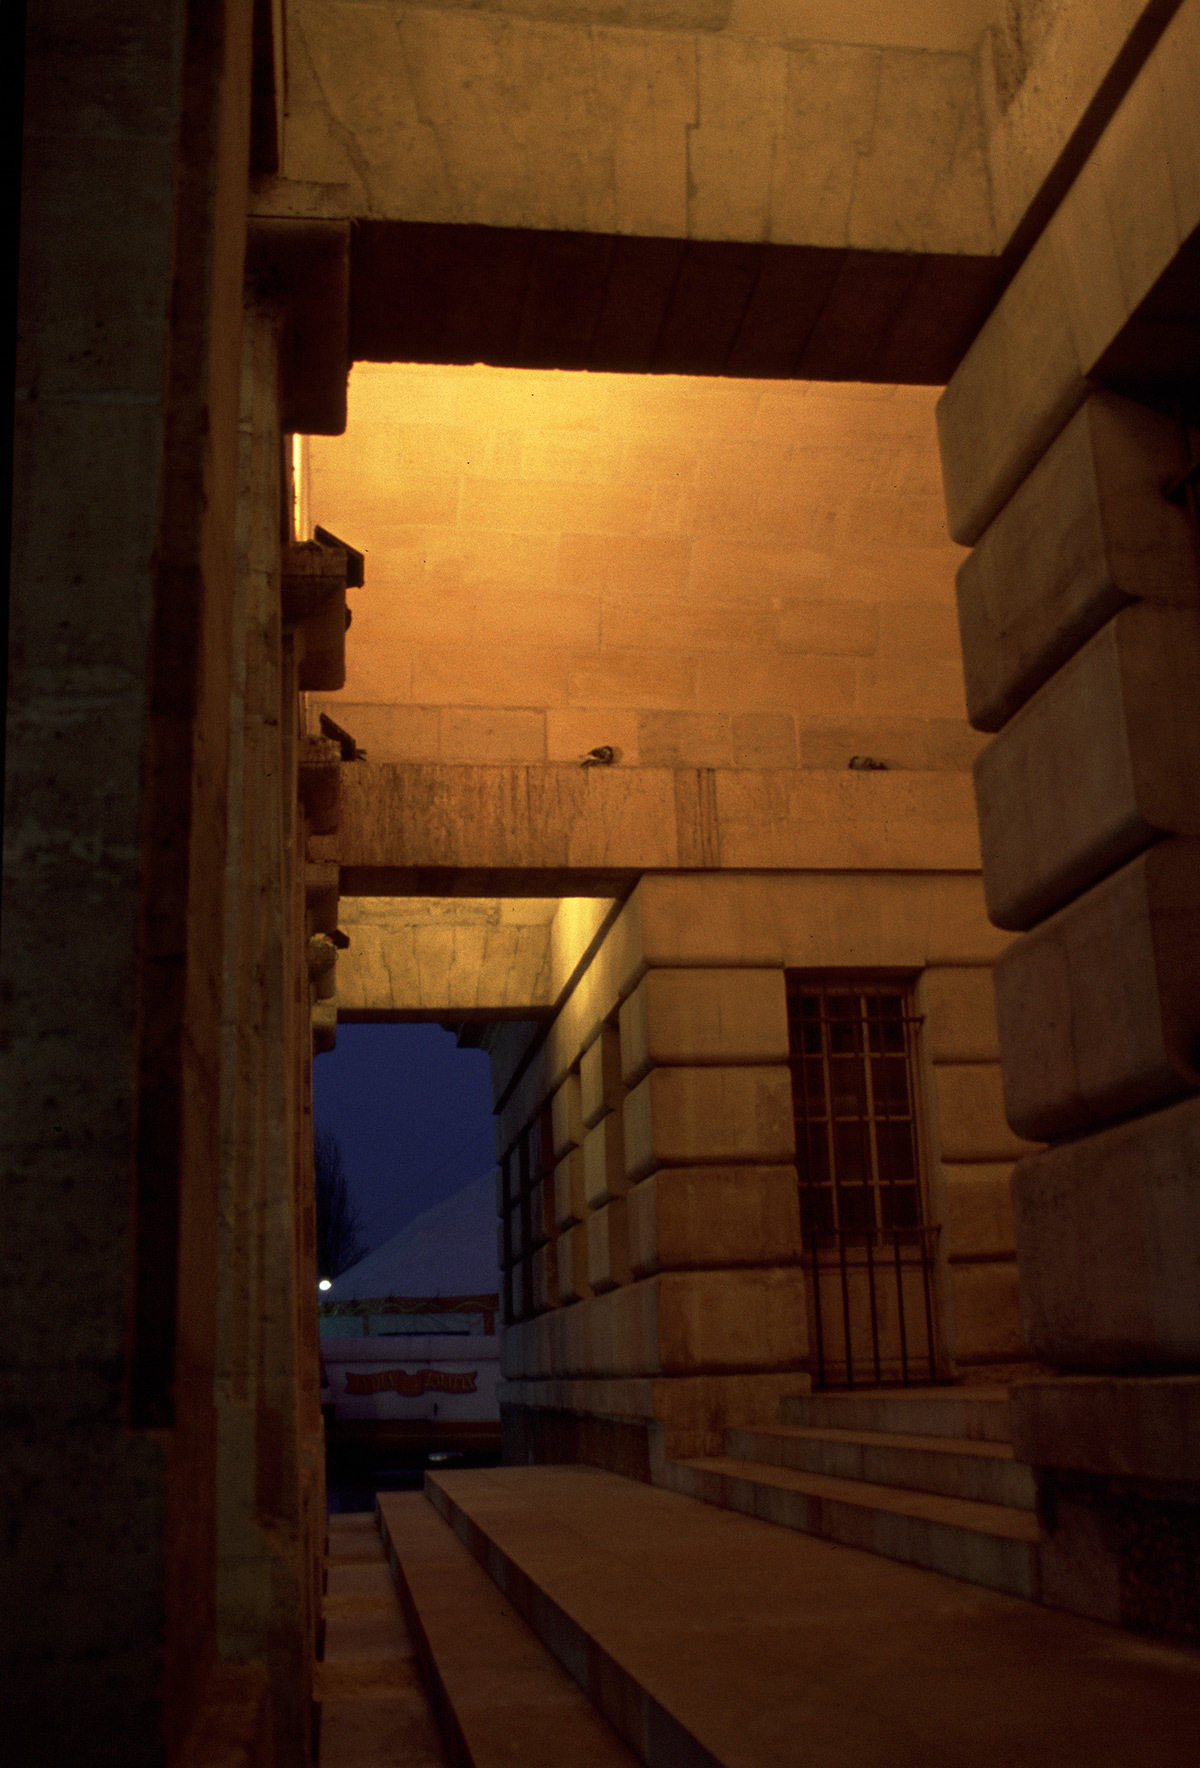 Rotonde La Villette, place de Stalingrad, Paris, France - sous le portique de nuit - Architecte Claude Nicolas Ledoux - Concepteur lumiere Louis Clair, Light Cibles - Photo Vincent Laganier